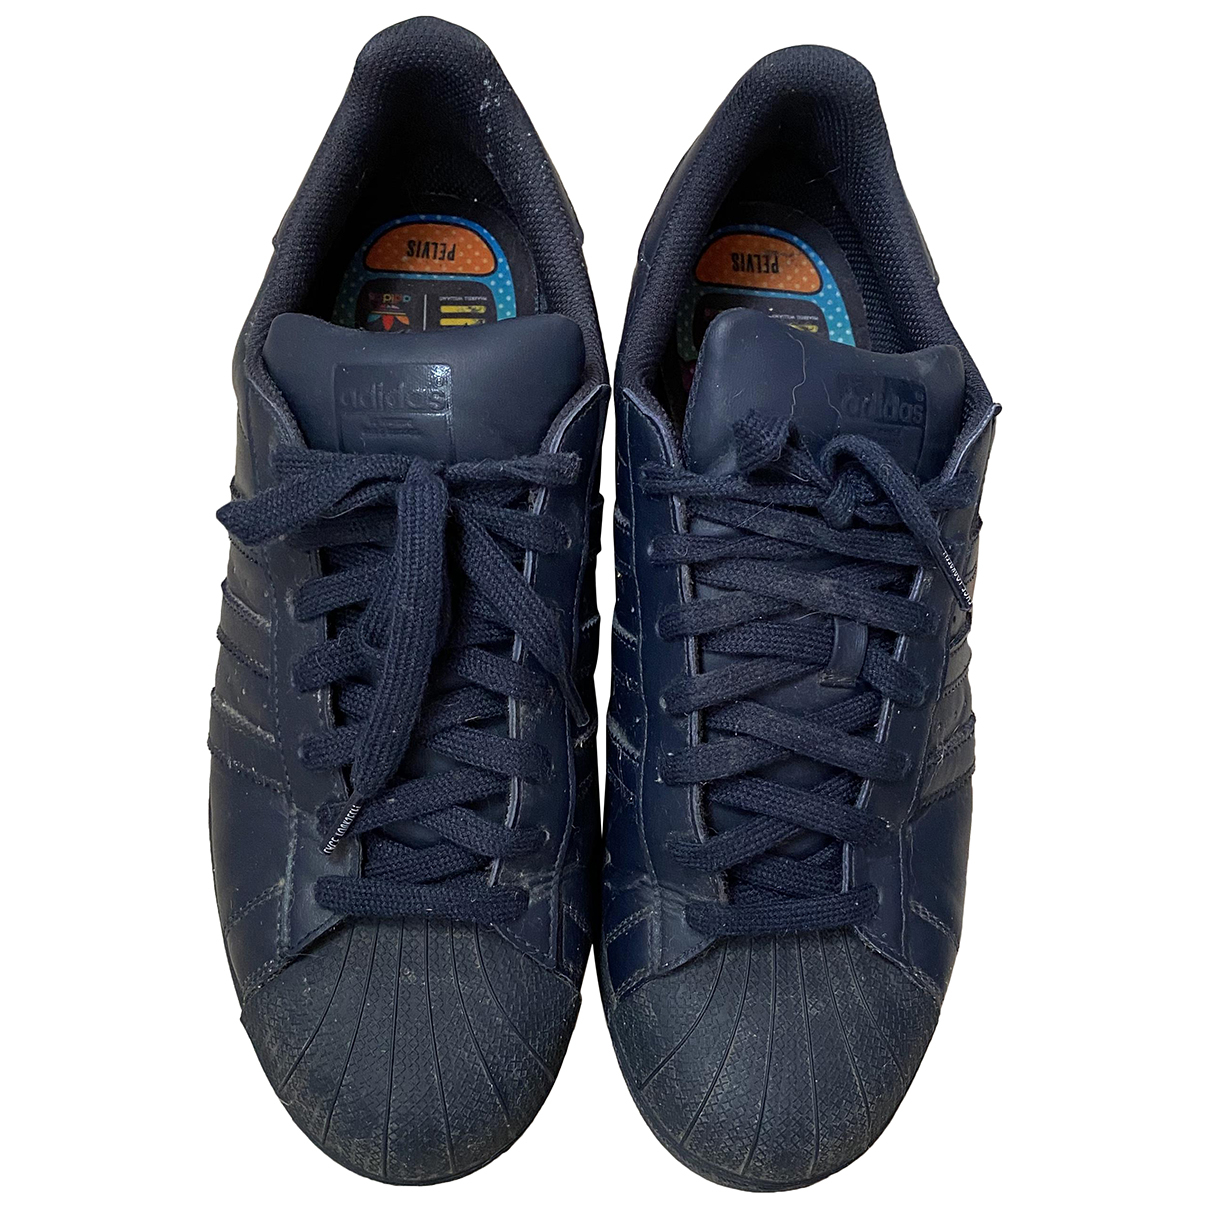 Adidas X Pharrell Williams N Navy Leather Trainers for Men 46 EU